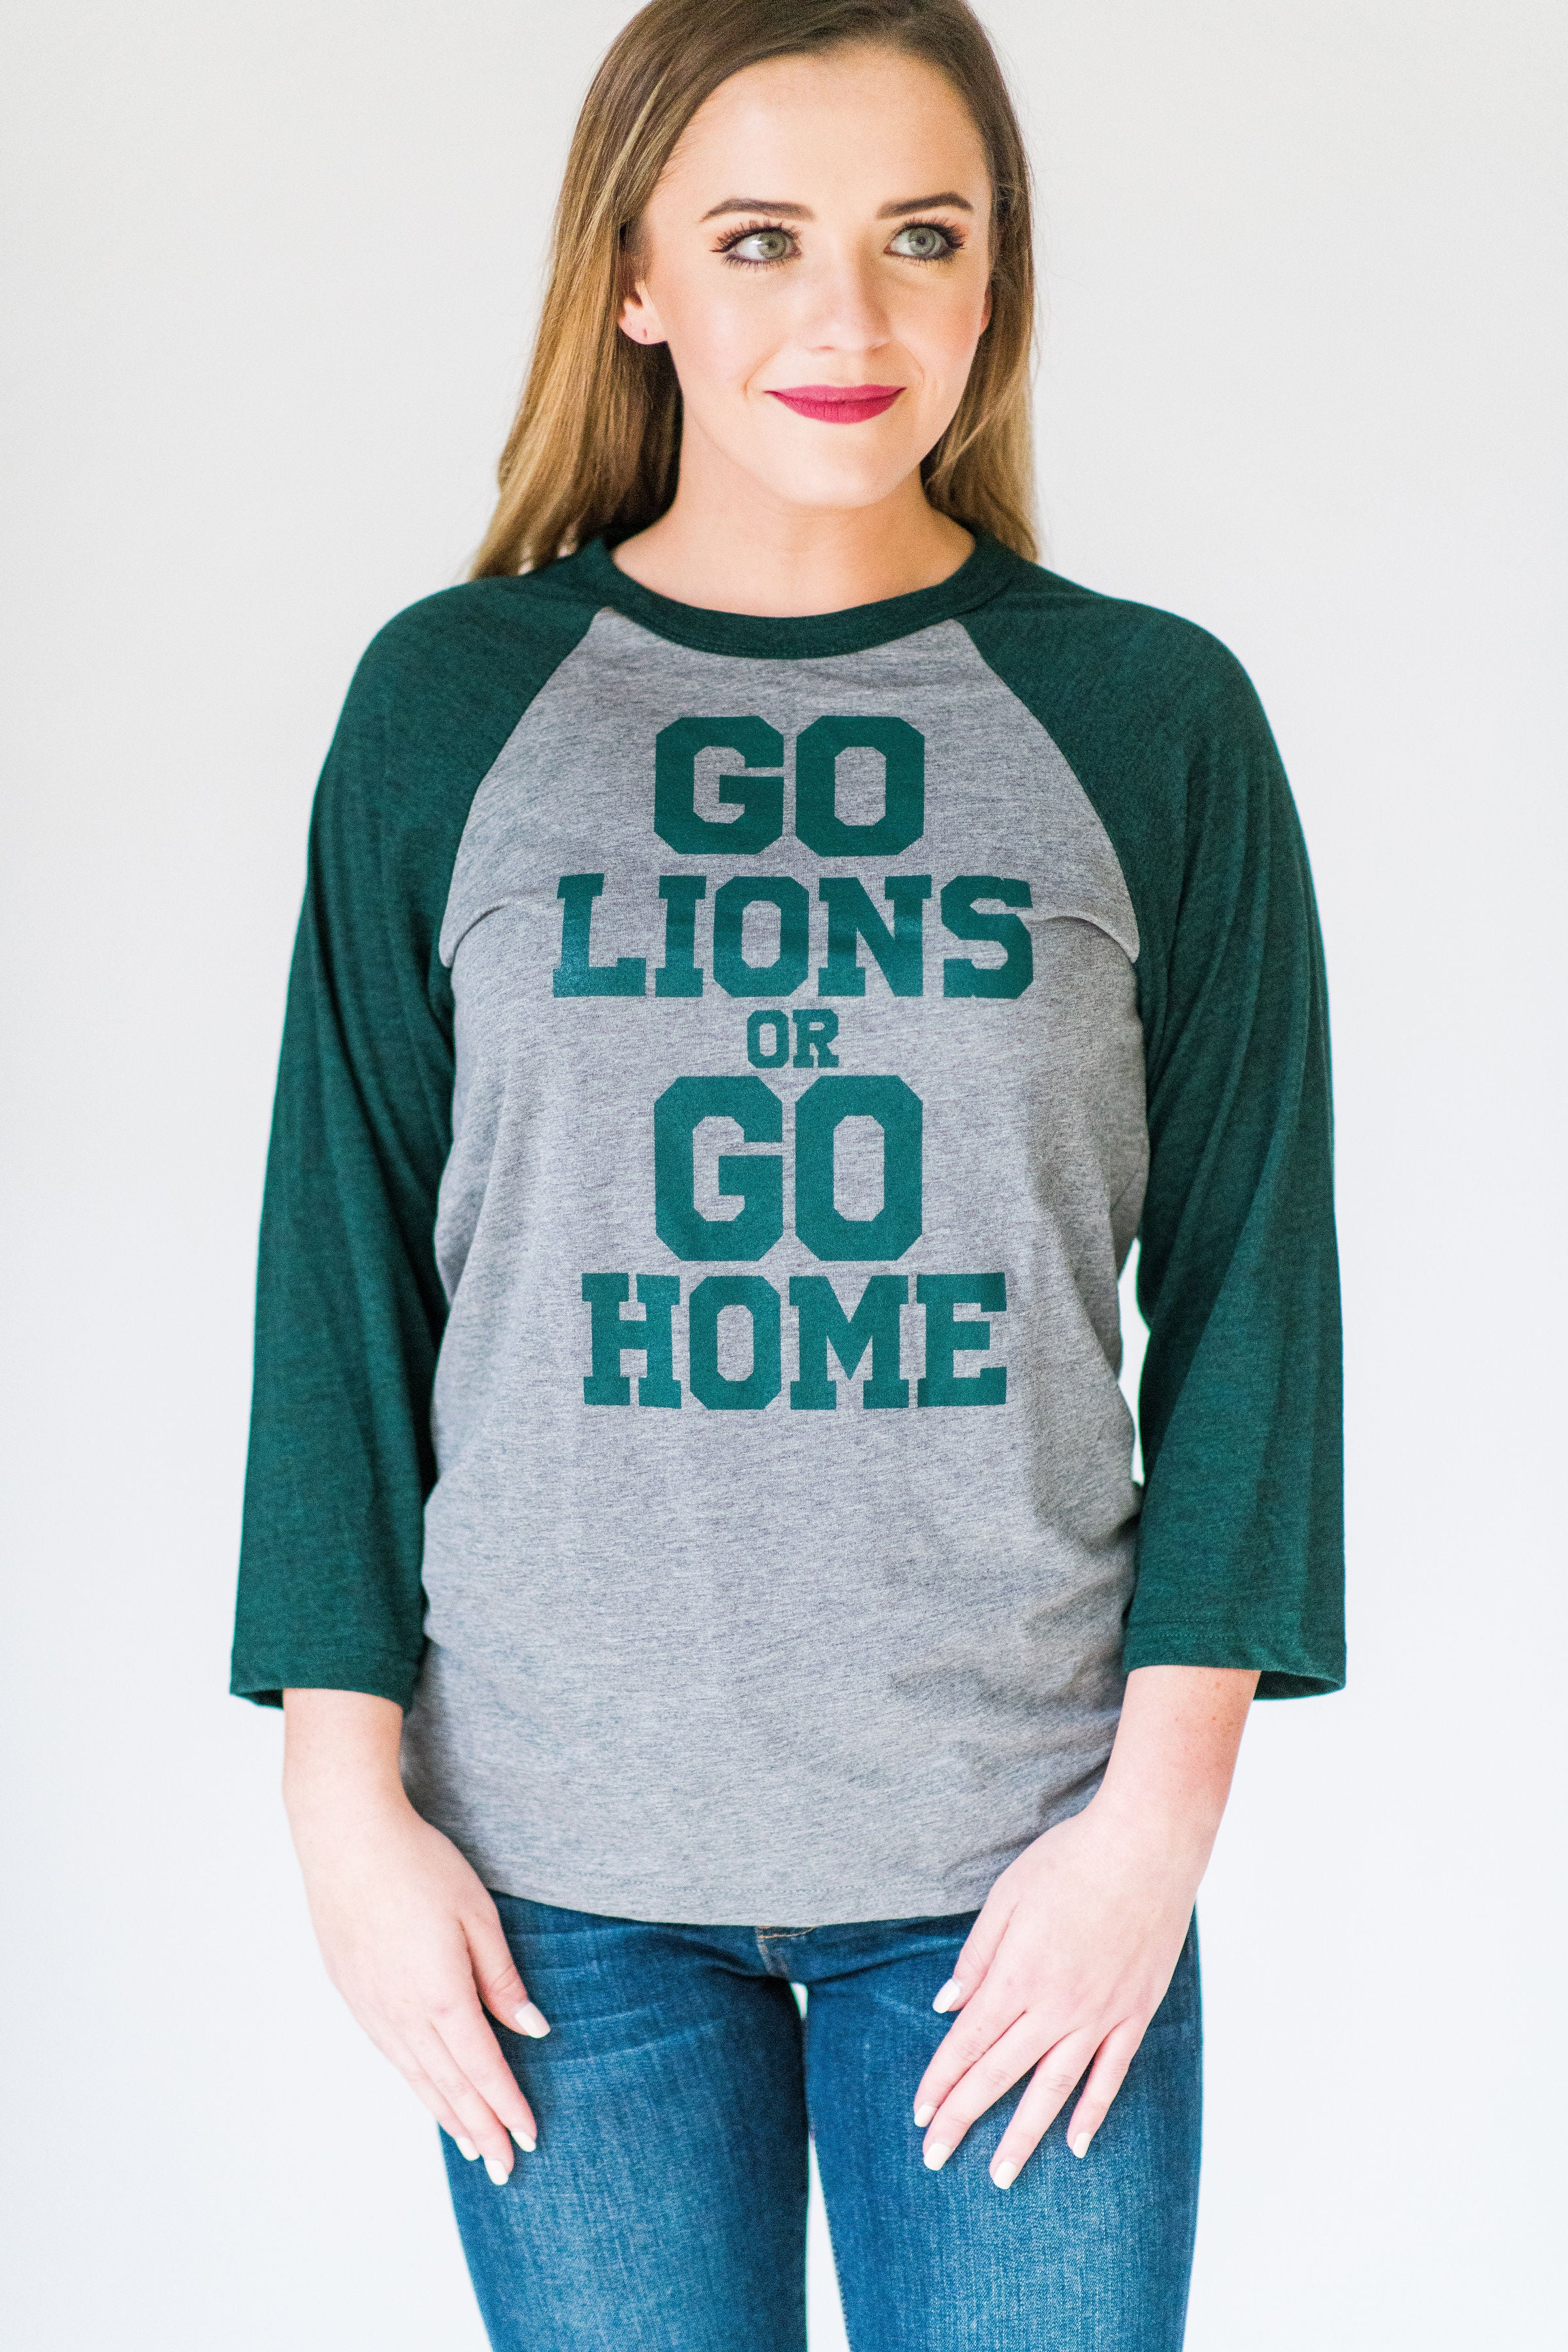 Bishop T's Go Lions or Go Home Raglan:  Green & Grey